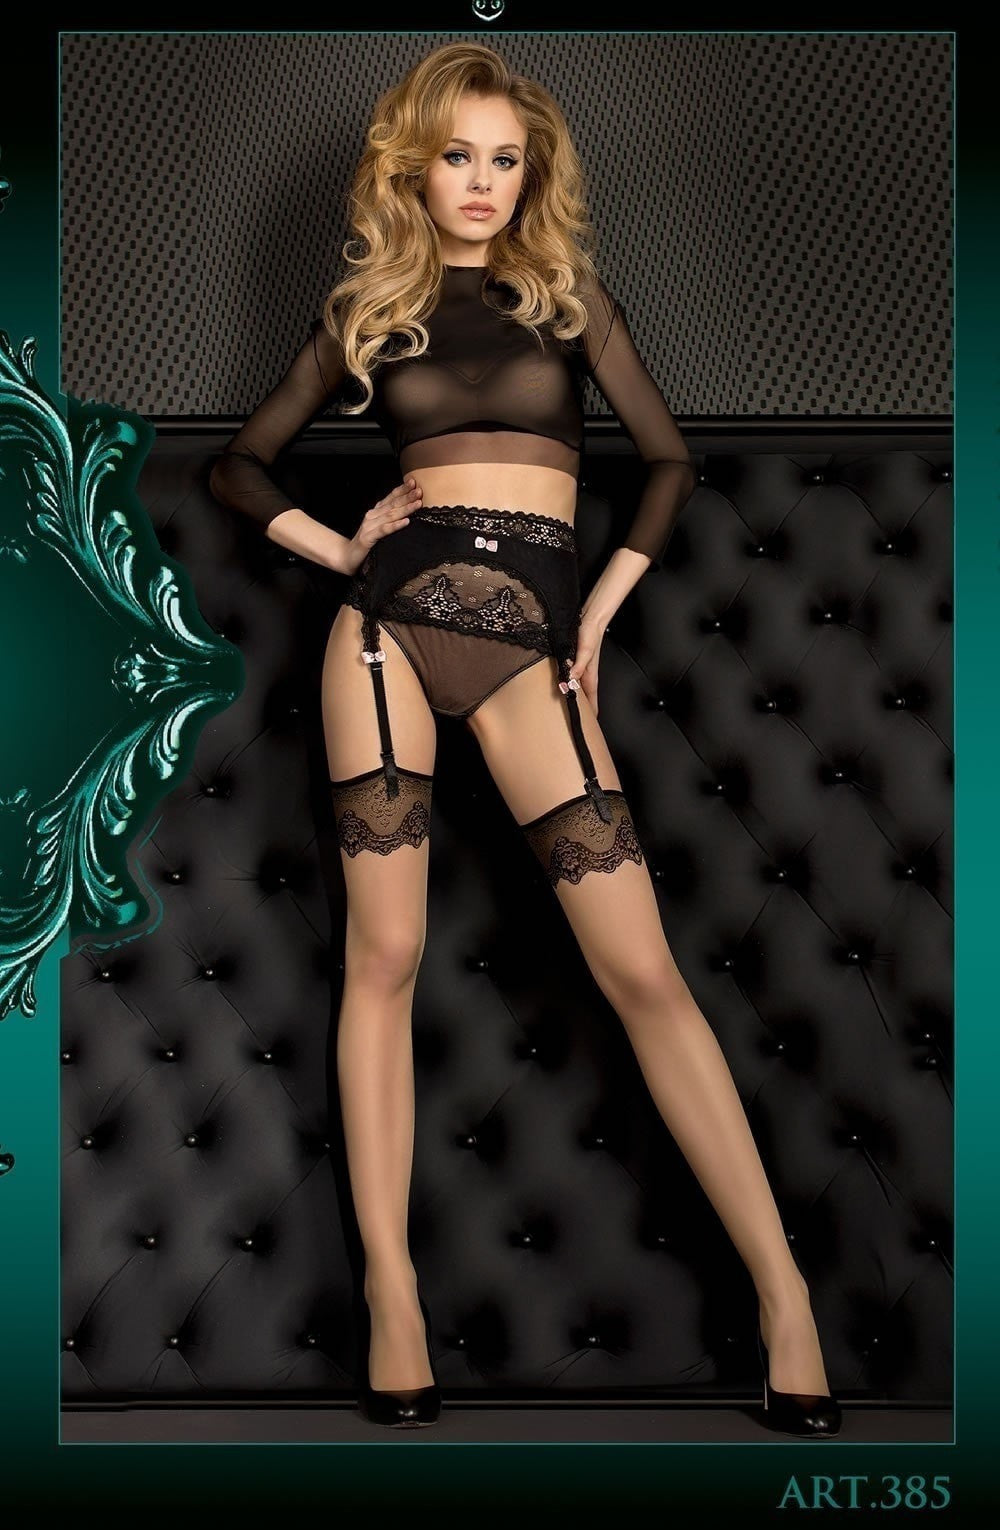 Ballerina Stockings 385 (Skin) - Stockings - Ballerina - Charm and Lace Boutique